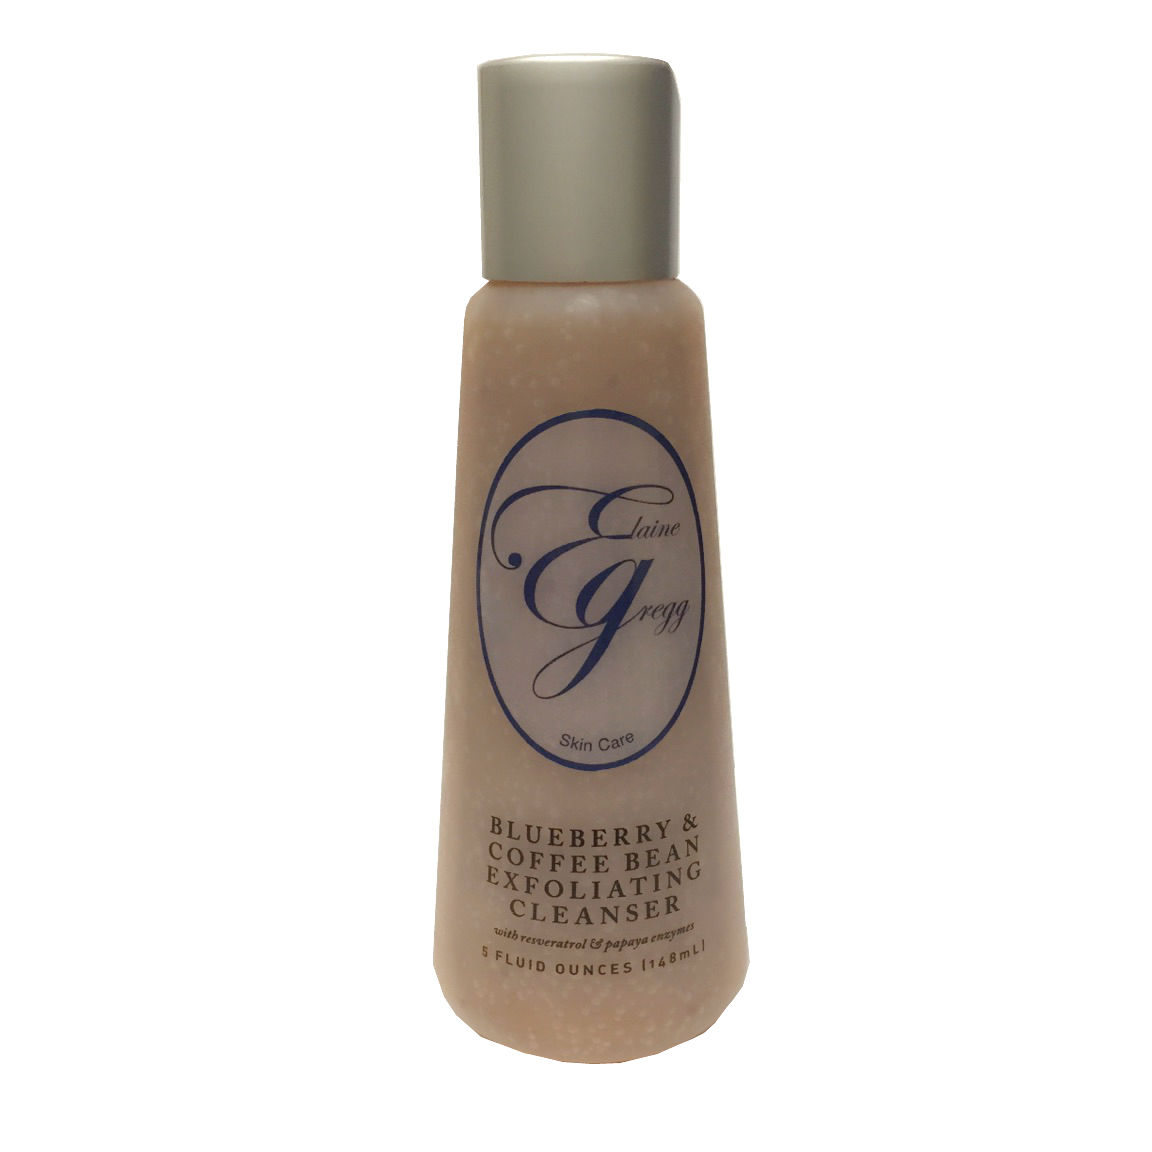 Elaine Gregg Blueberry & Coffee Bean Exfoliating Cleanser